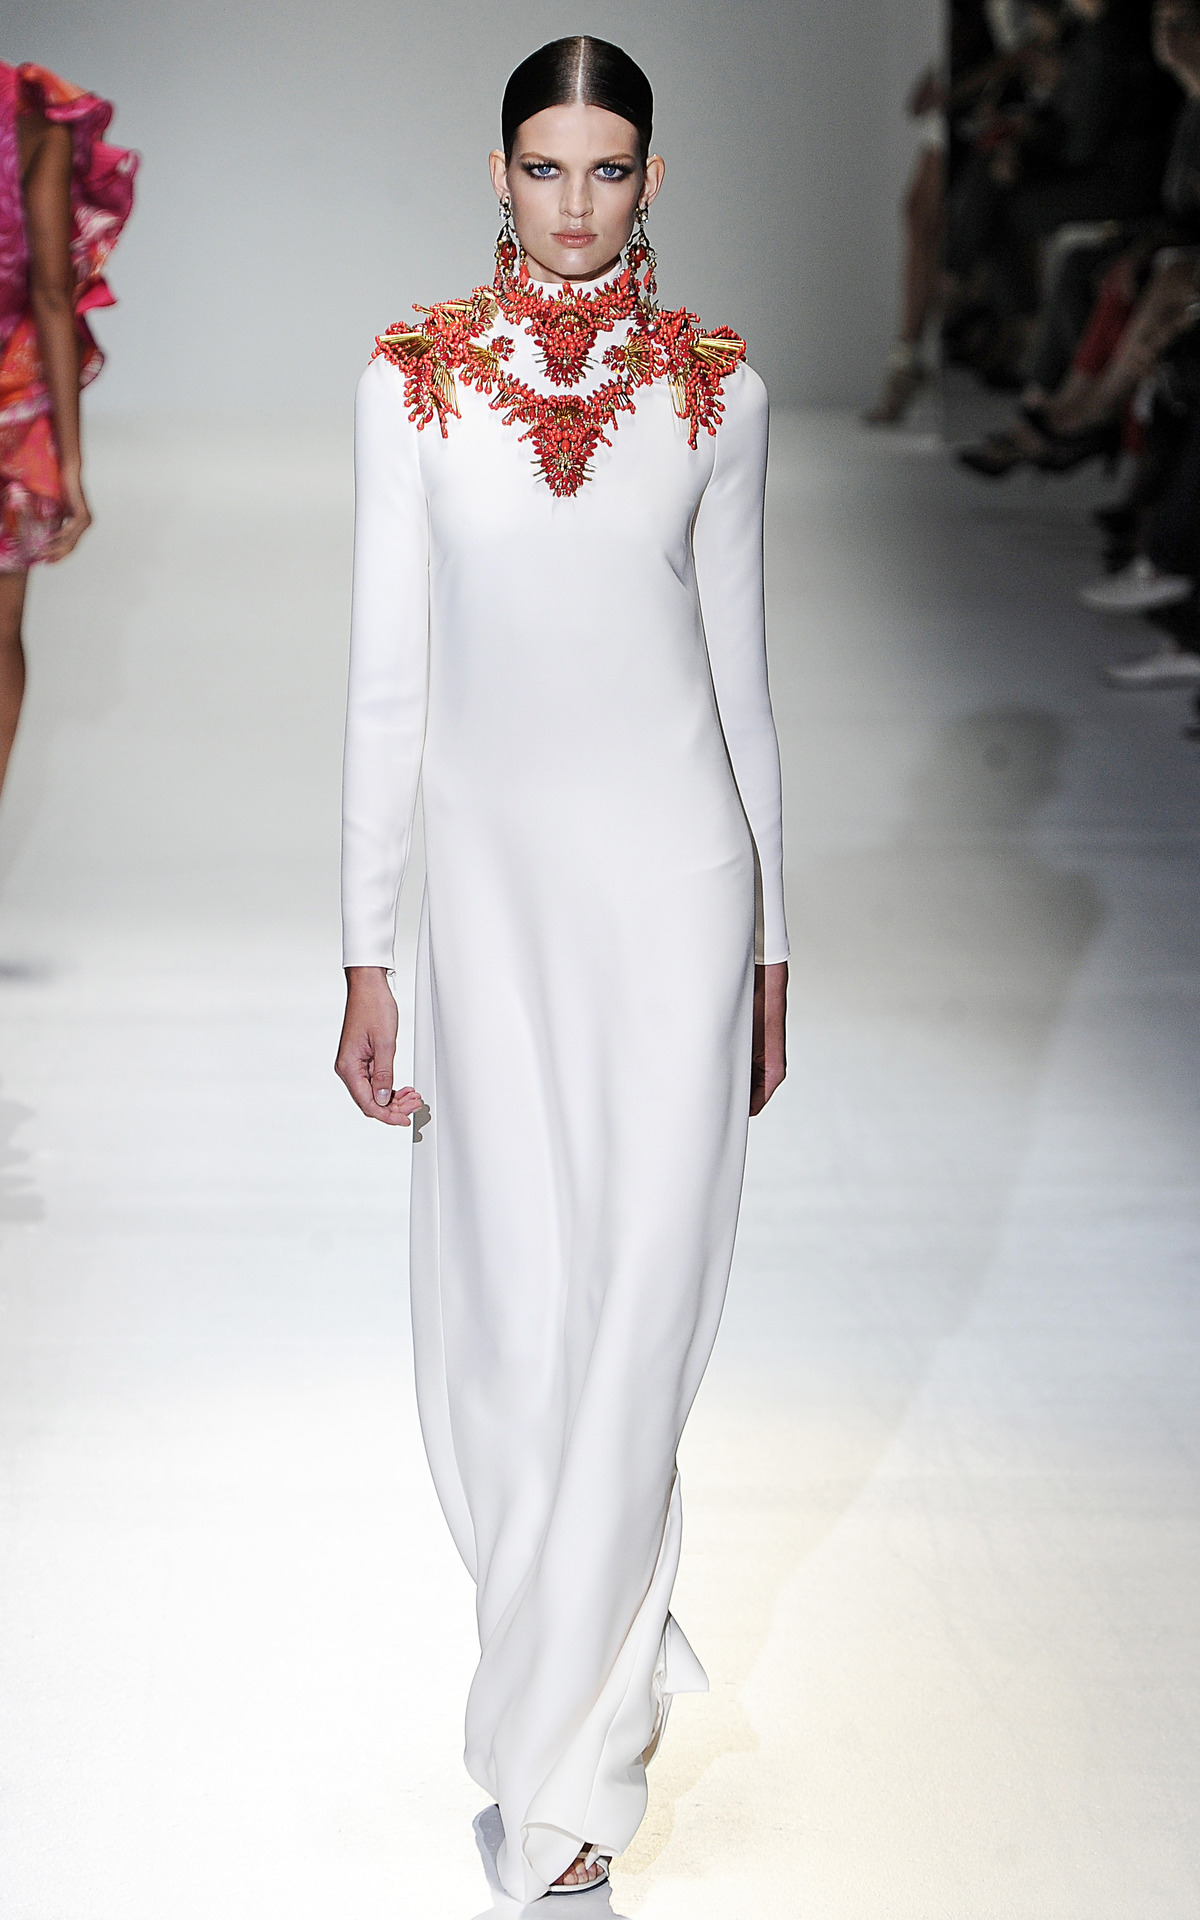 Photo by firstVIEW Décolletage Dreams: neck jewelry to the max. Gucci Spring 2013, Milan.